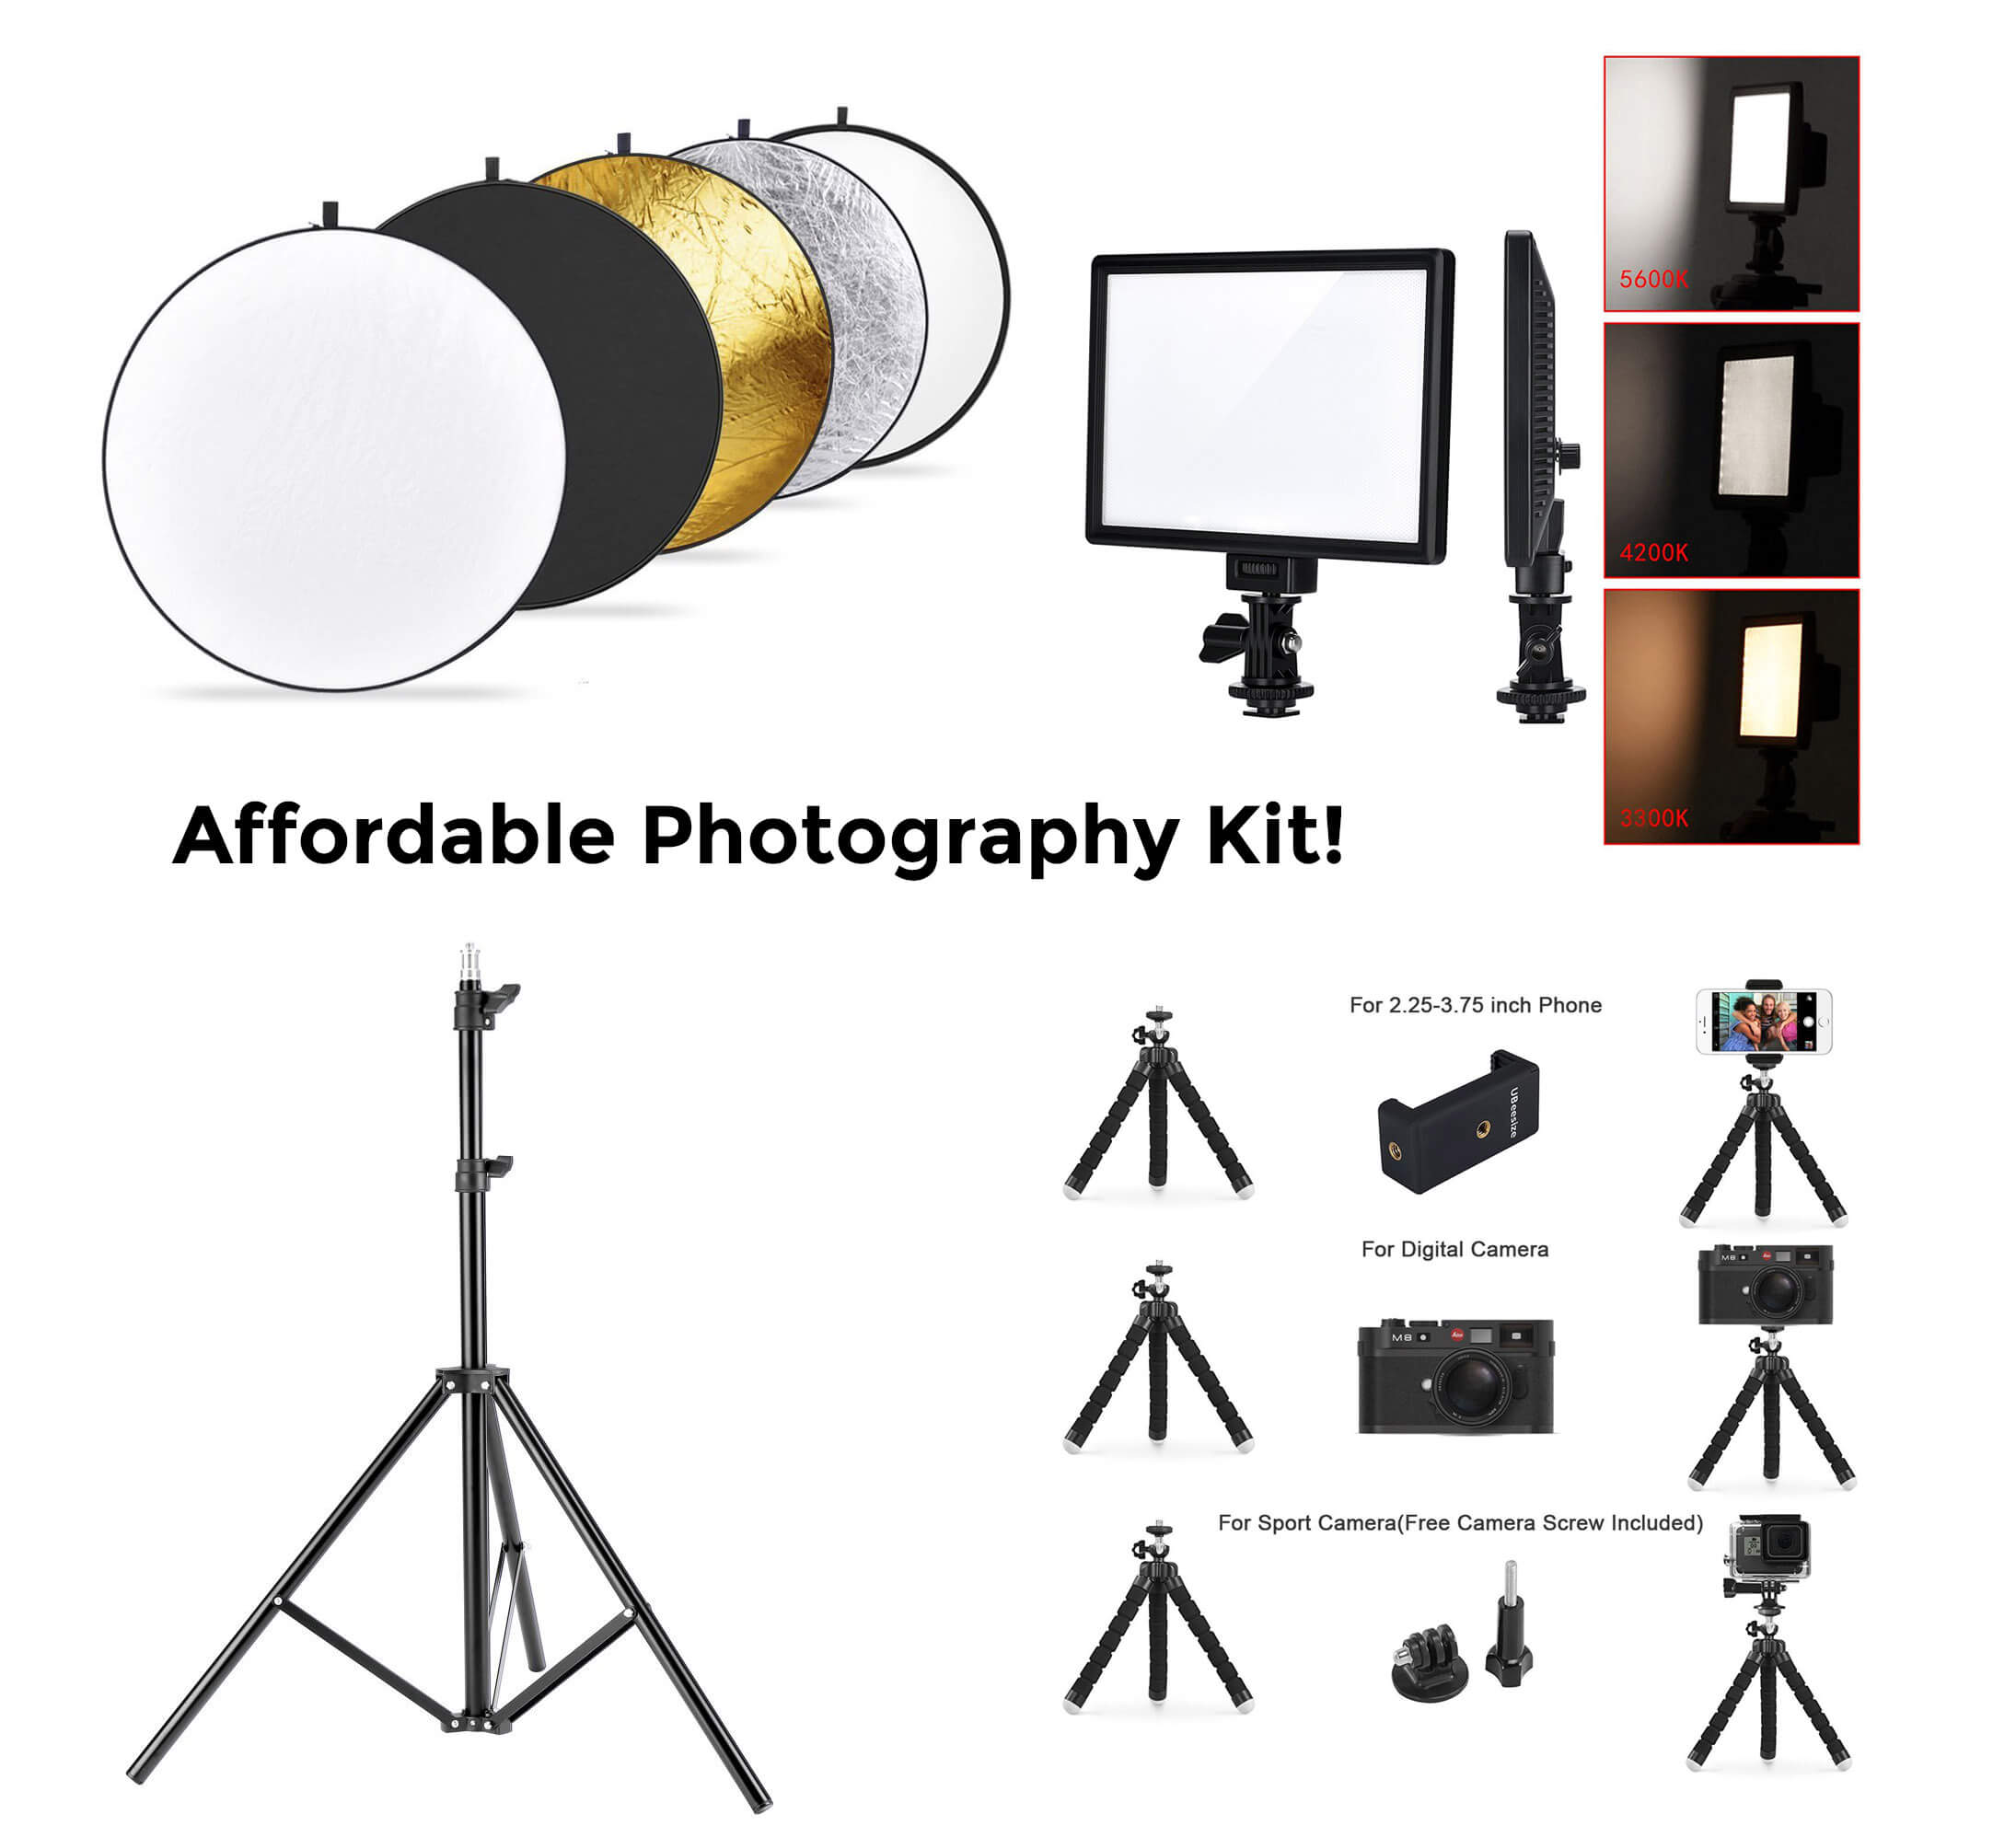 Affordable photography kit